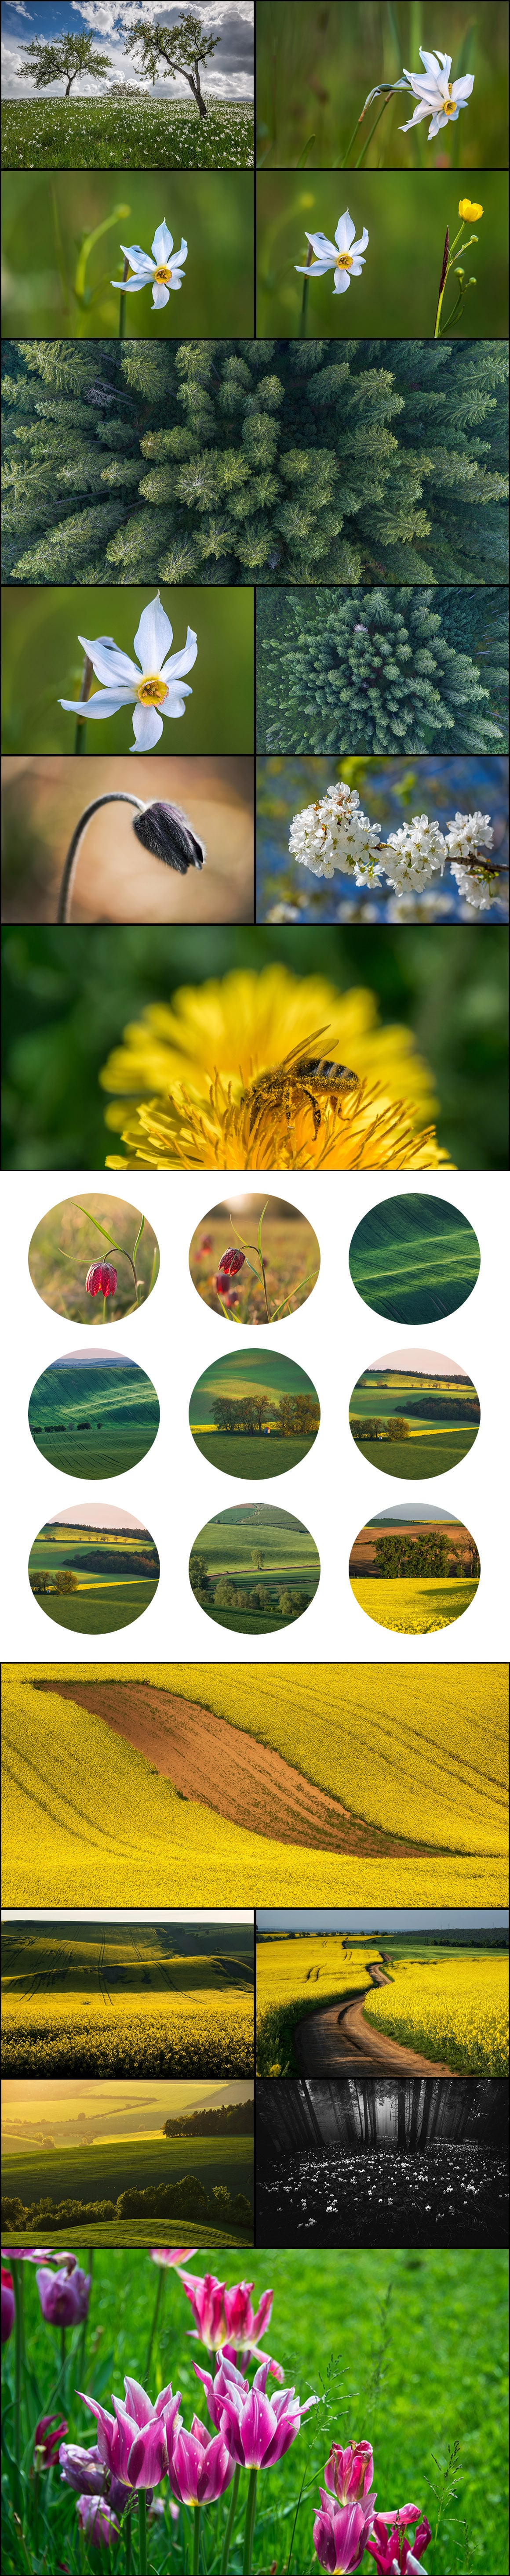 500+ Stock Images. Ultimate Photo Bundle  – $59 - PREVIEW nature3